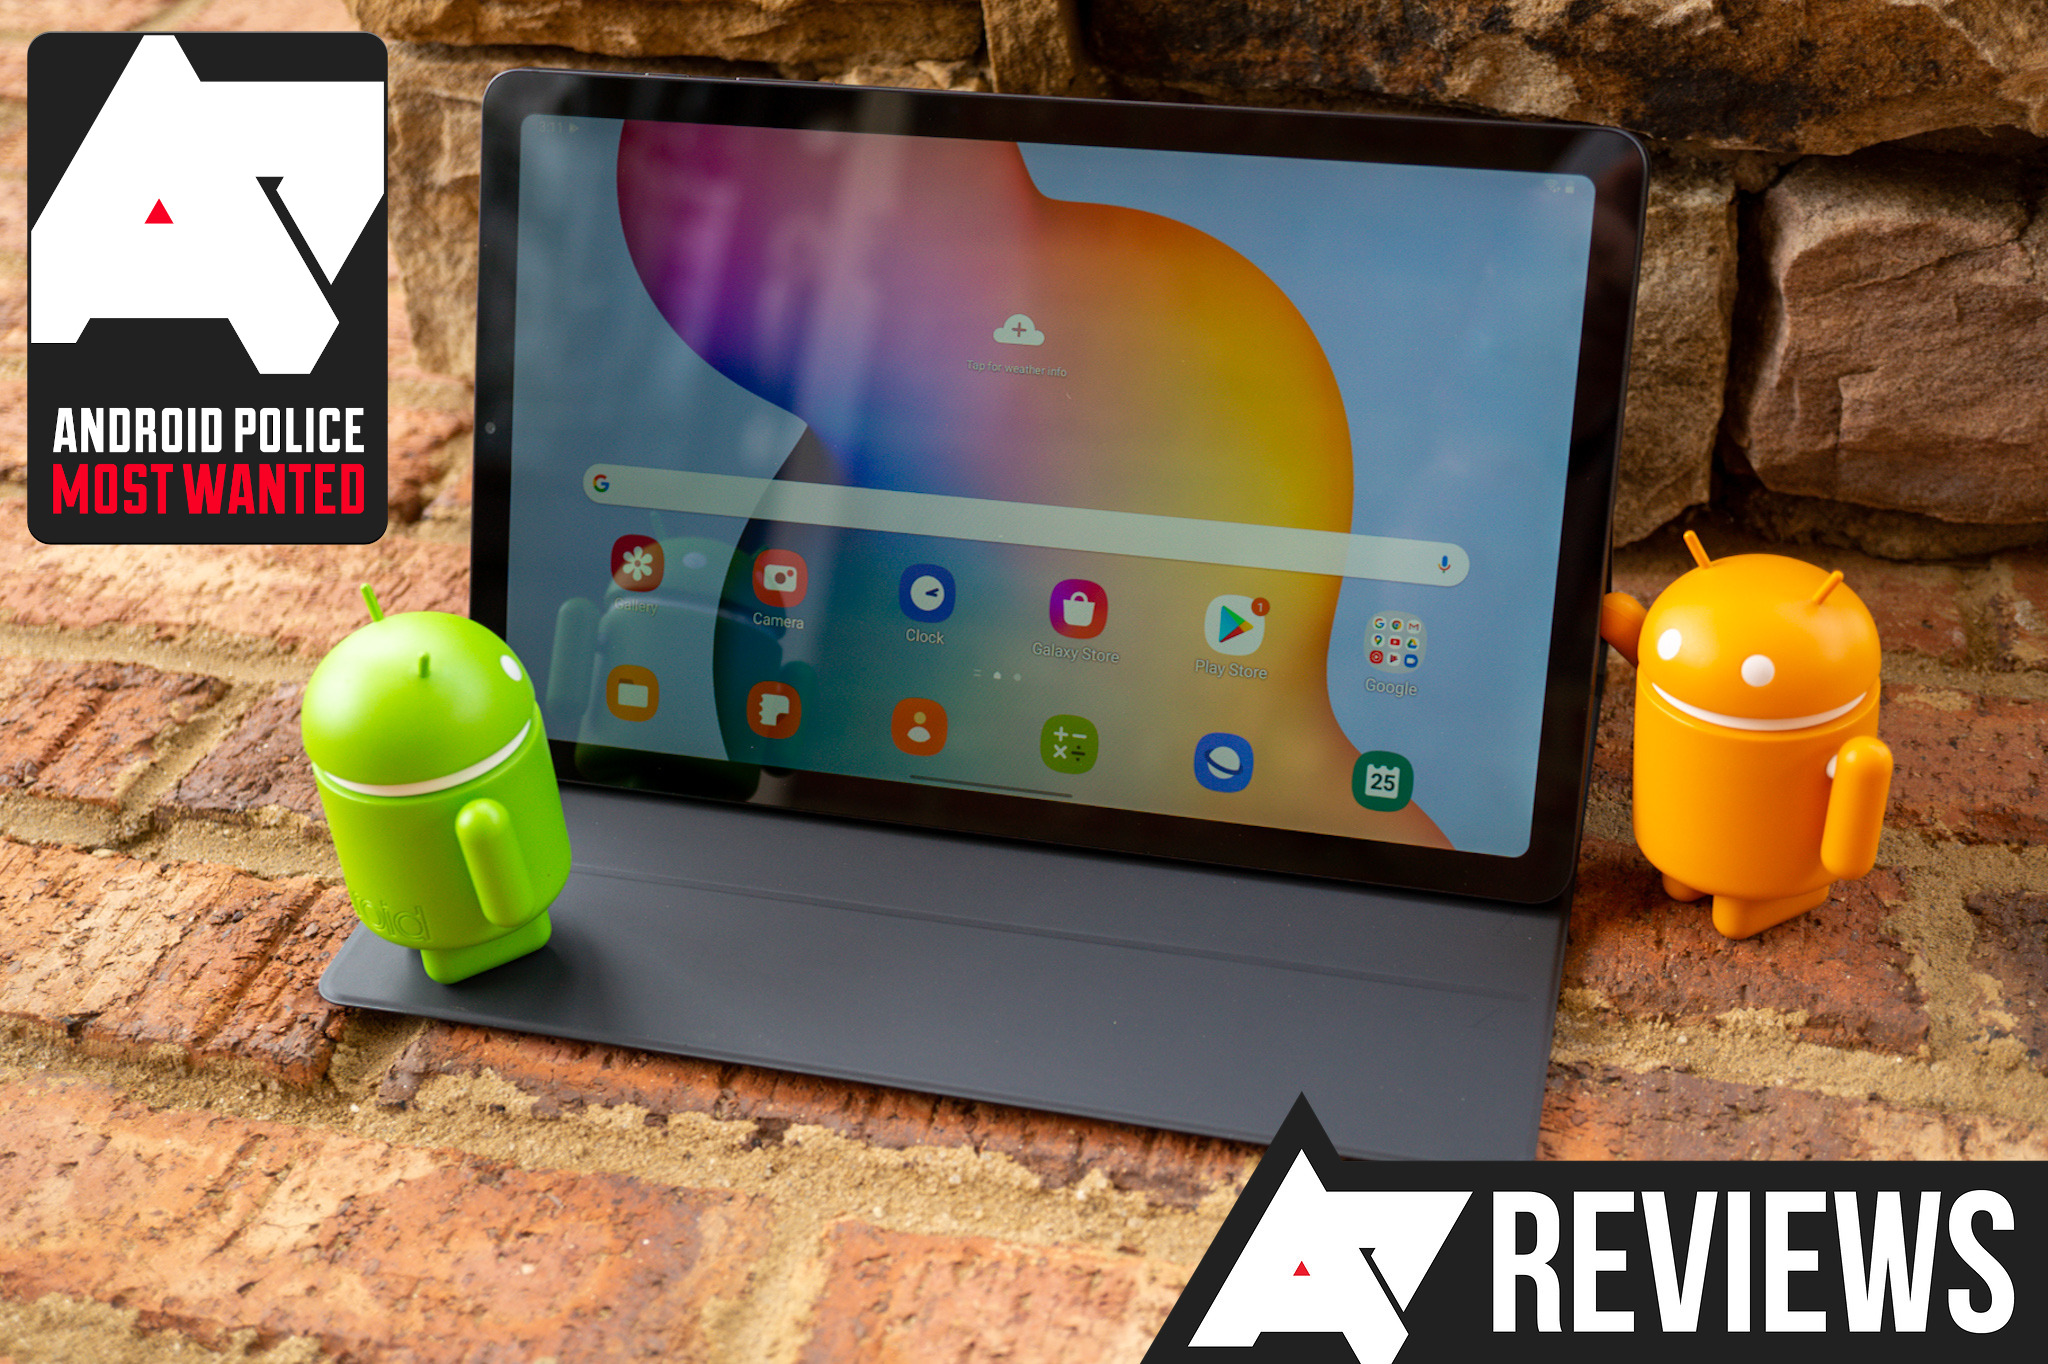 Samsung Galaxy Tab S6 Lite Review The New Android Tablet To Beat